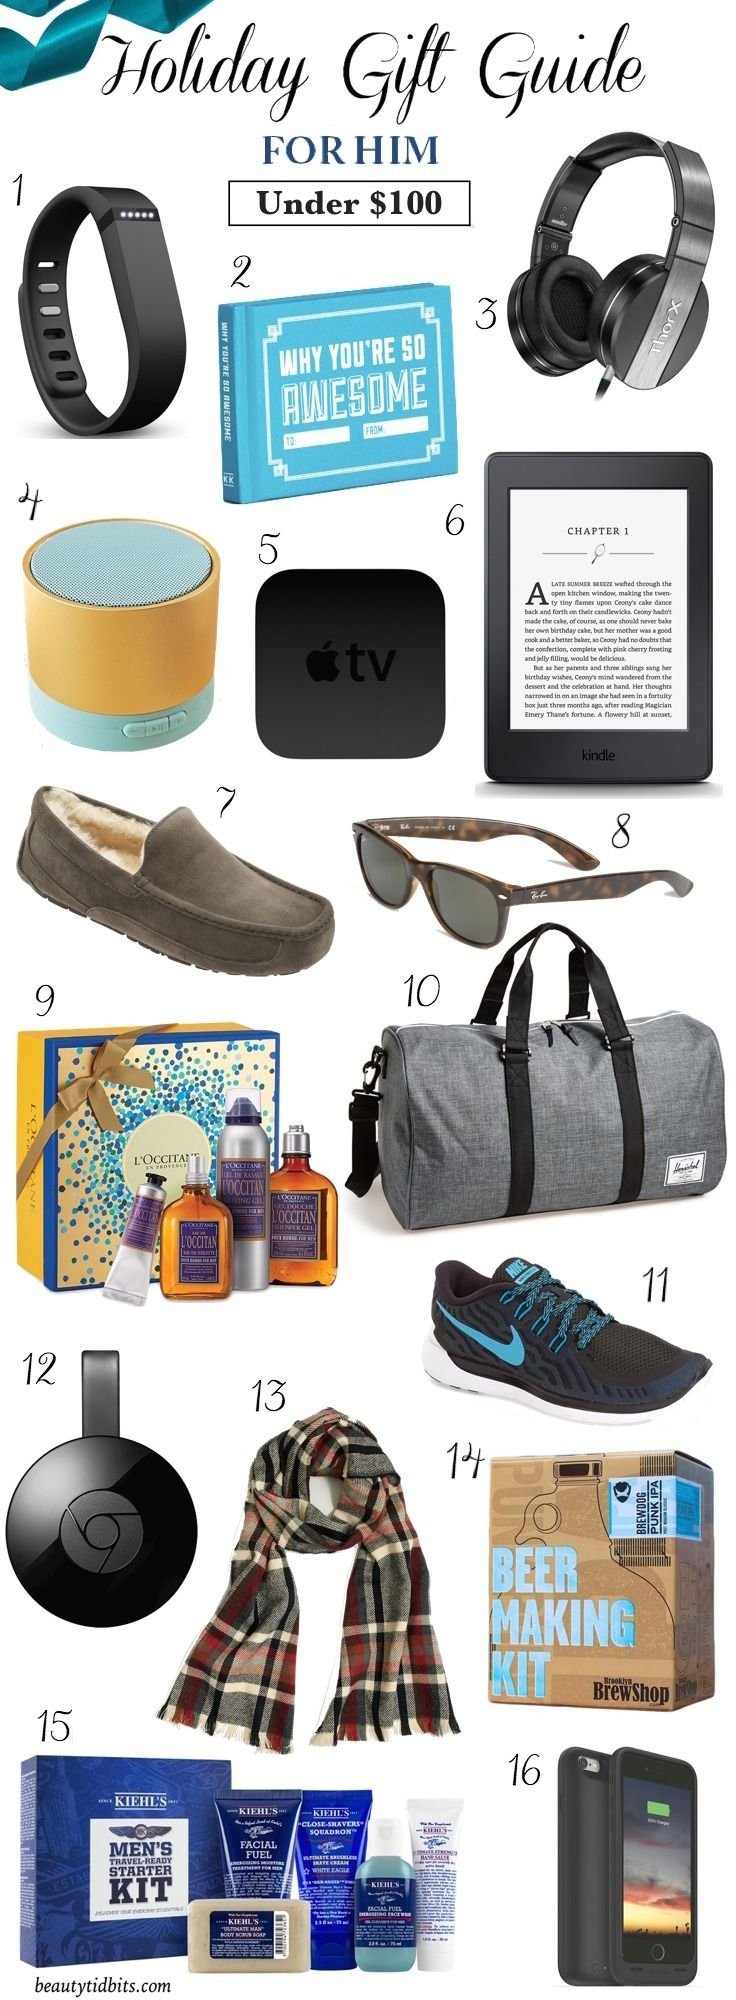 10 Awesome Holiday Gift Ideas For Men 126 best holiday gift giving images on pinterest christmas 3 2020